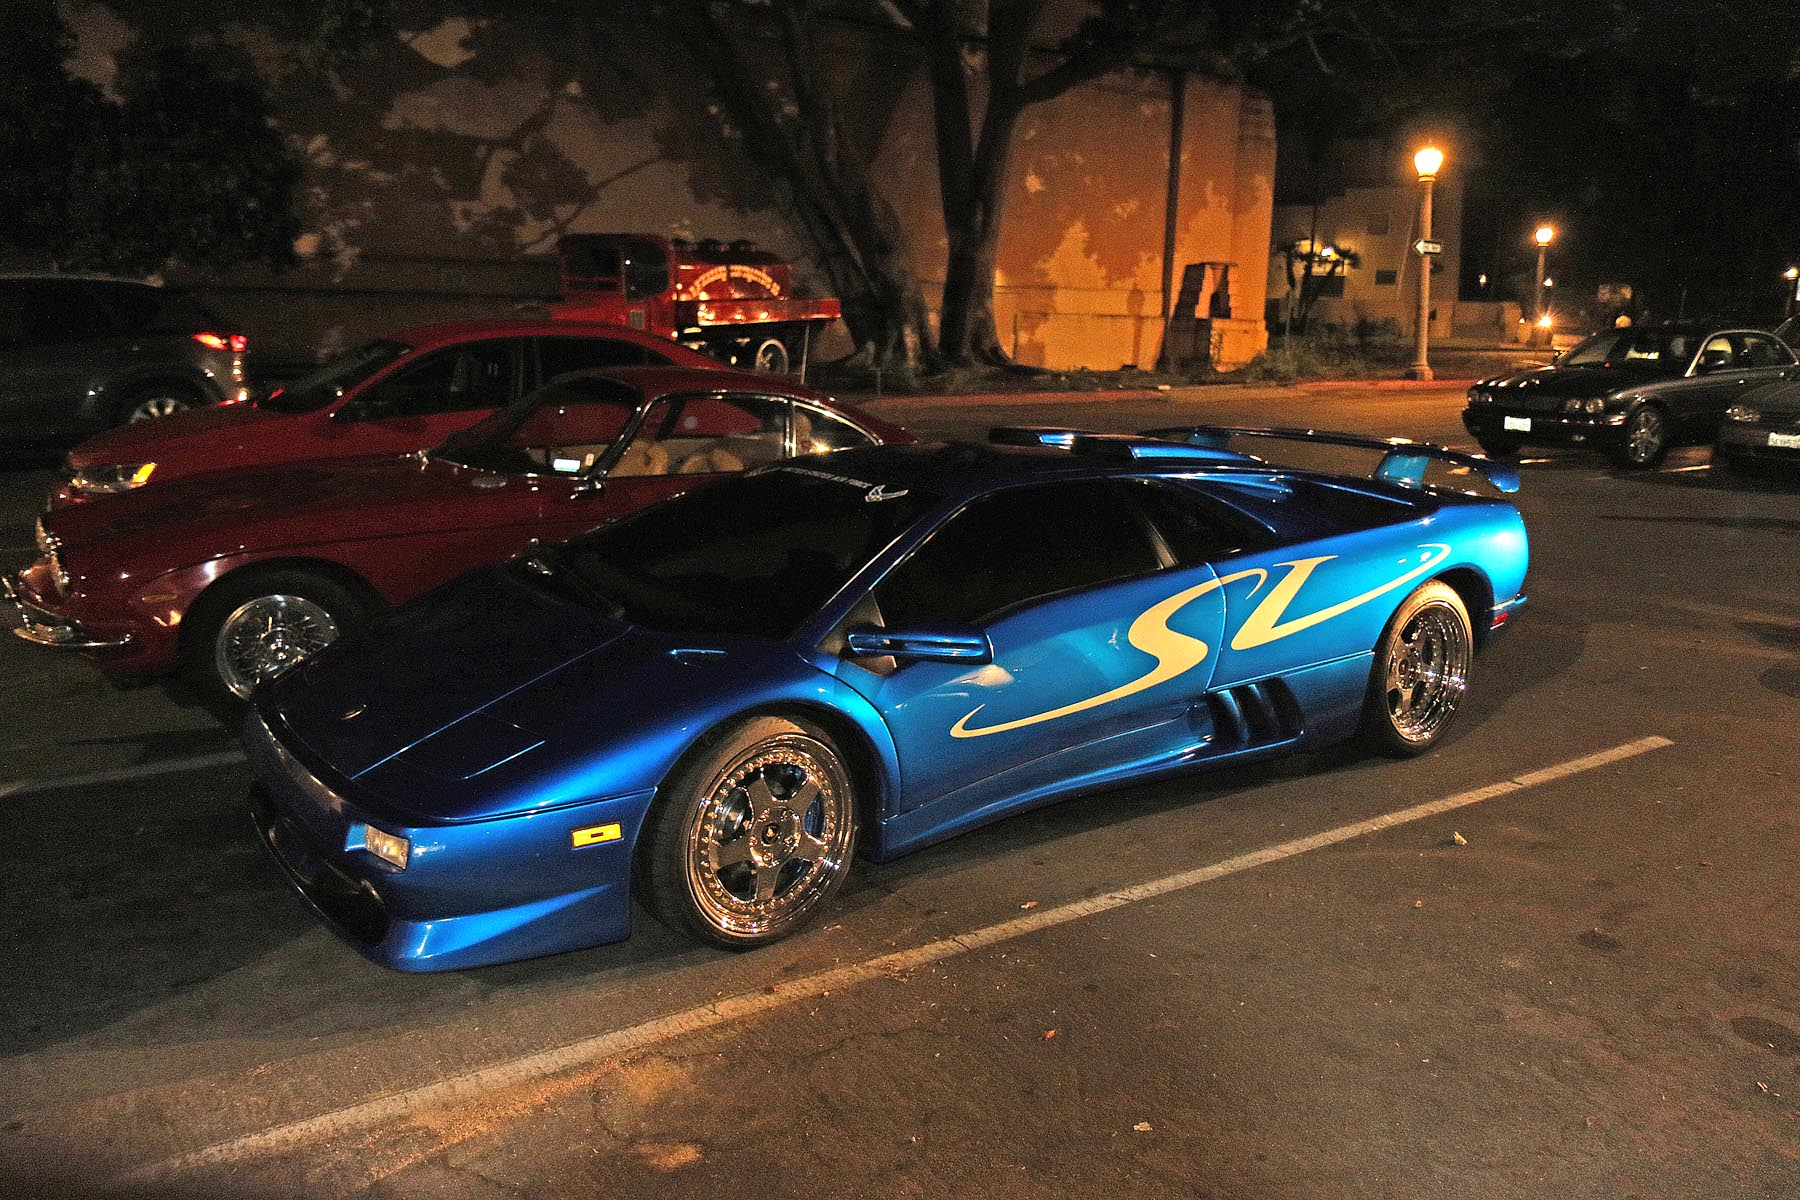 Kevin Hayes' Awesome Blue Diablo